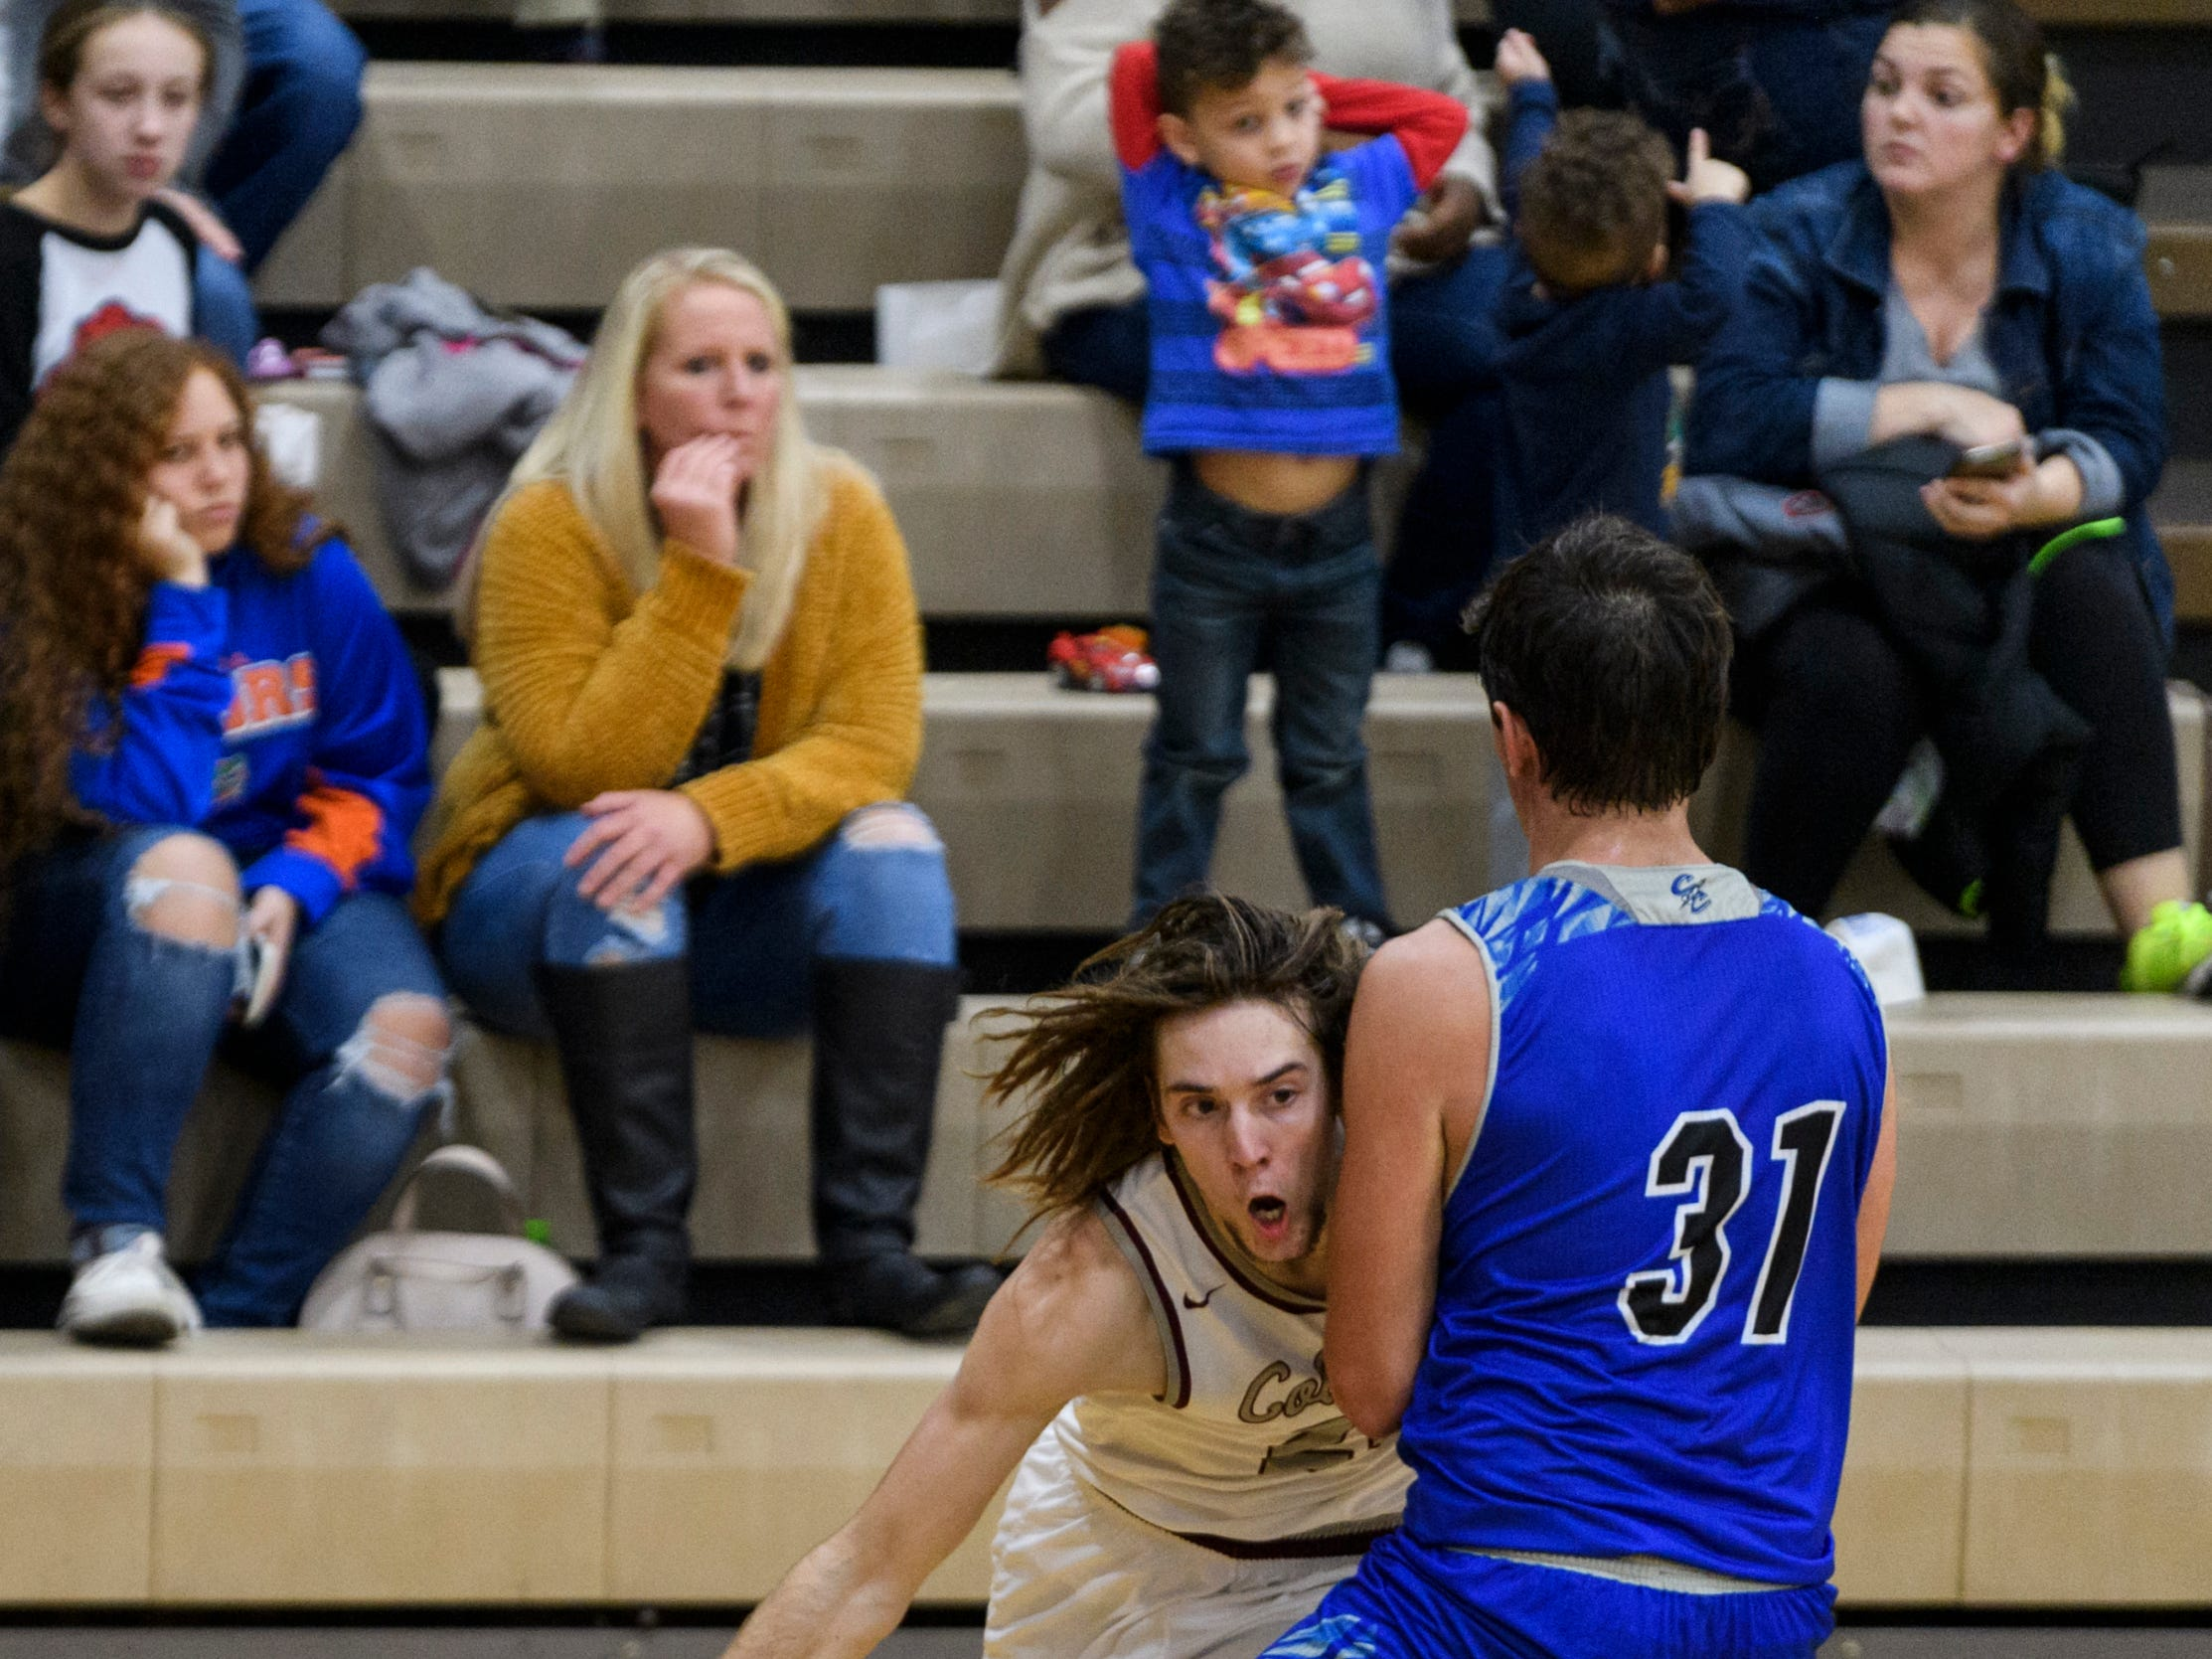 Henderson's Nick Cissell (22) advances to the net as Crittenden County's Preston Turley (31) guards him during the second quarter Henderson County High School in Henderson, Ky., Tuesday, Dec. 18, 2018. The Colonels defeated the Rockets 88-52.